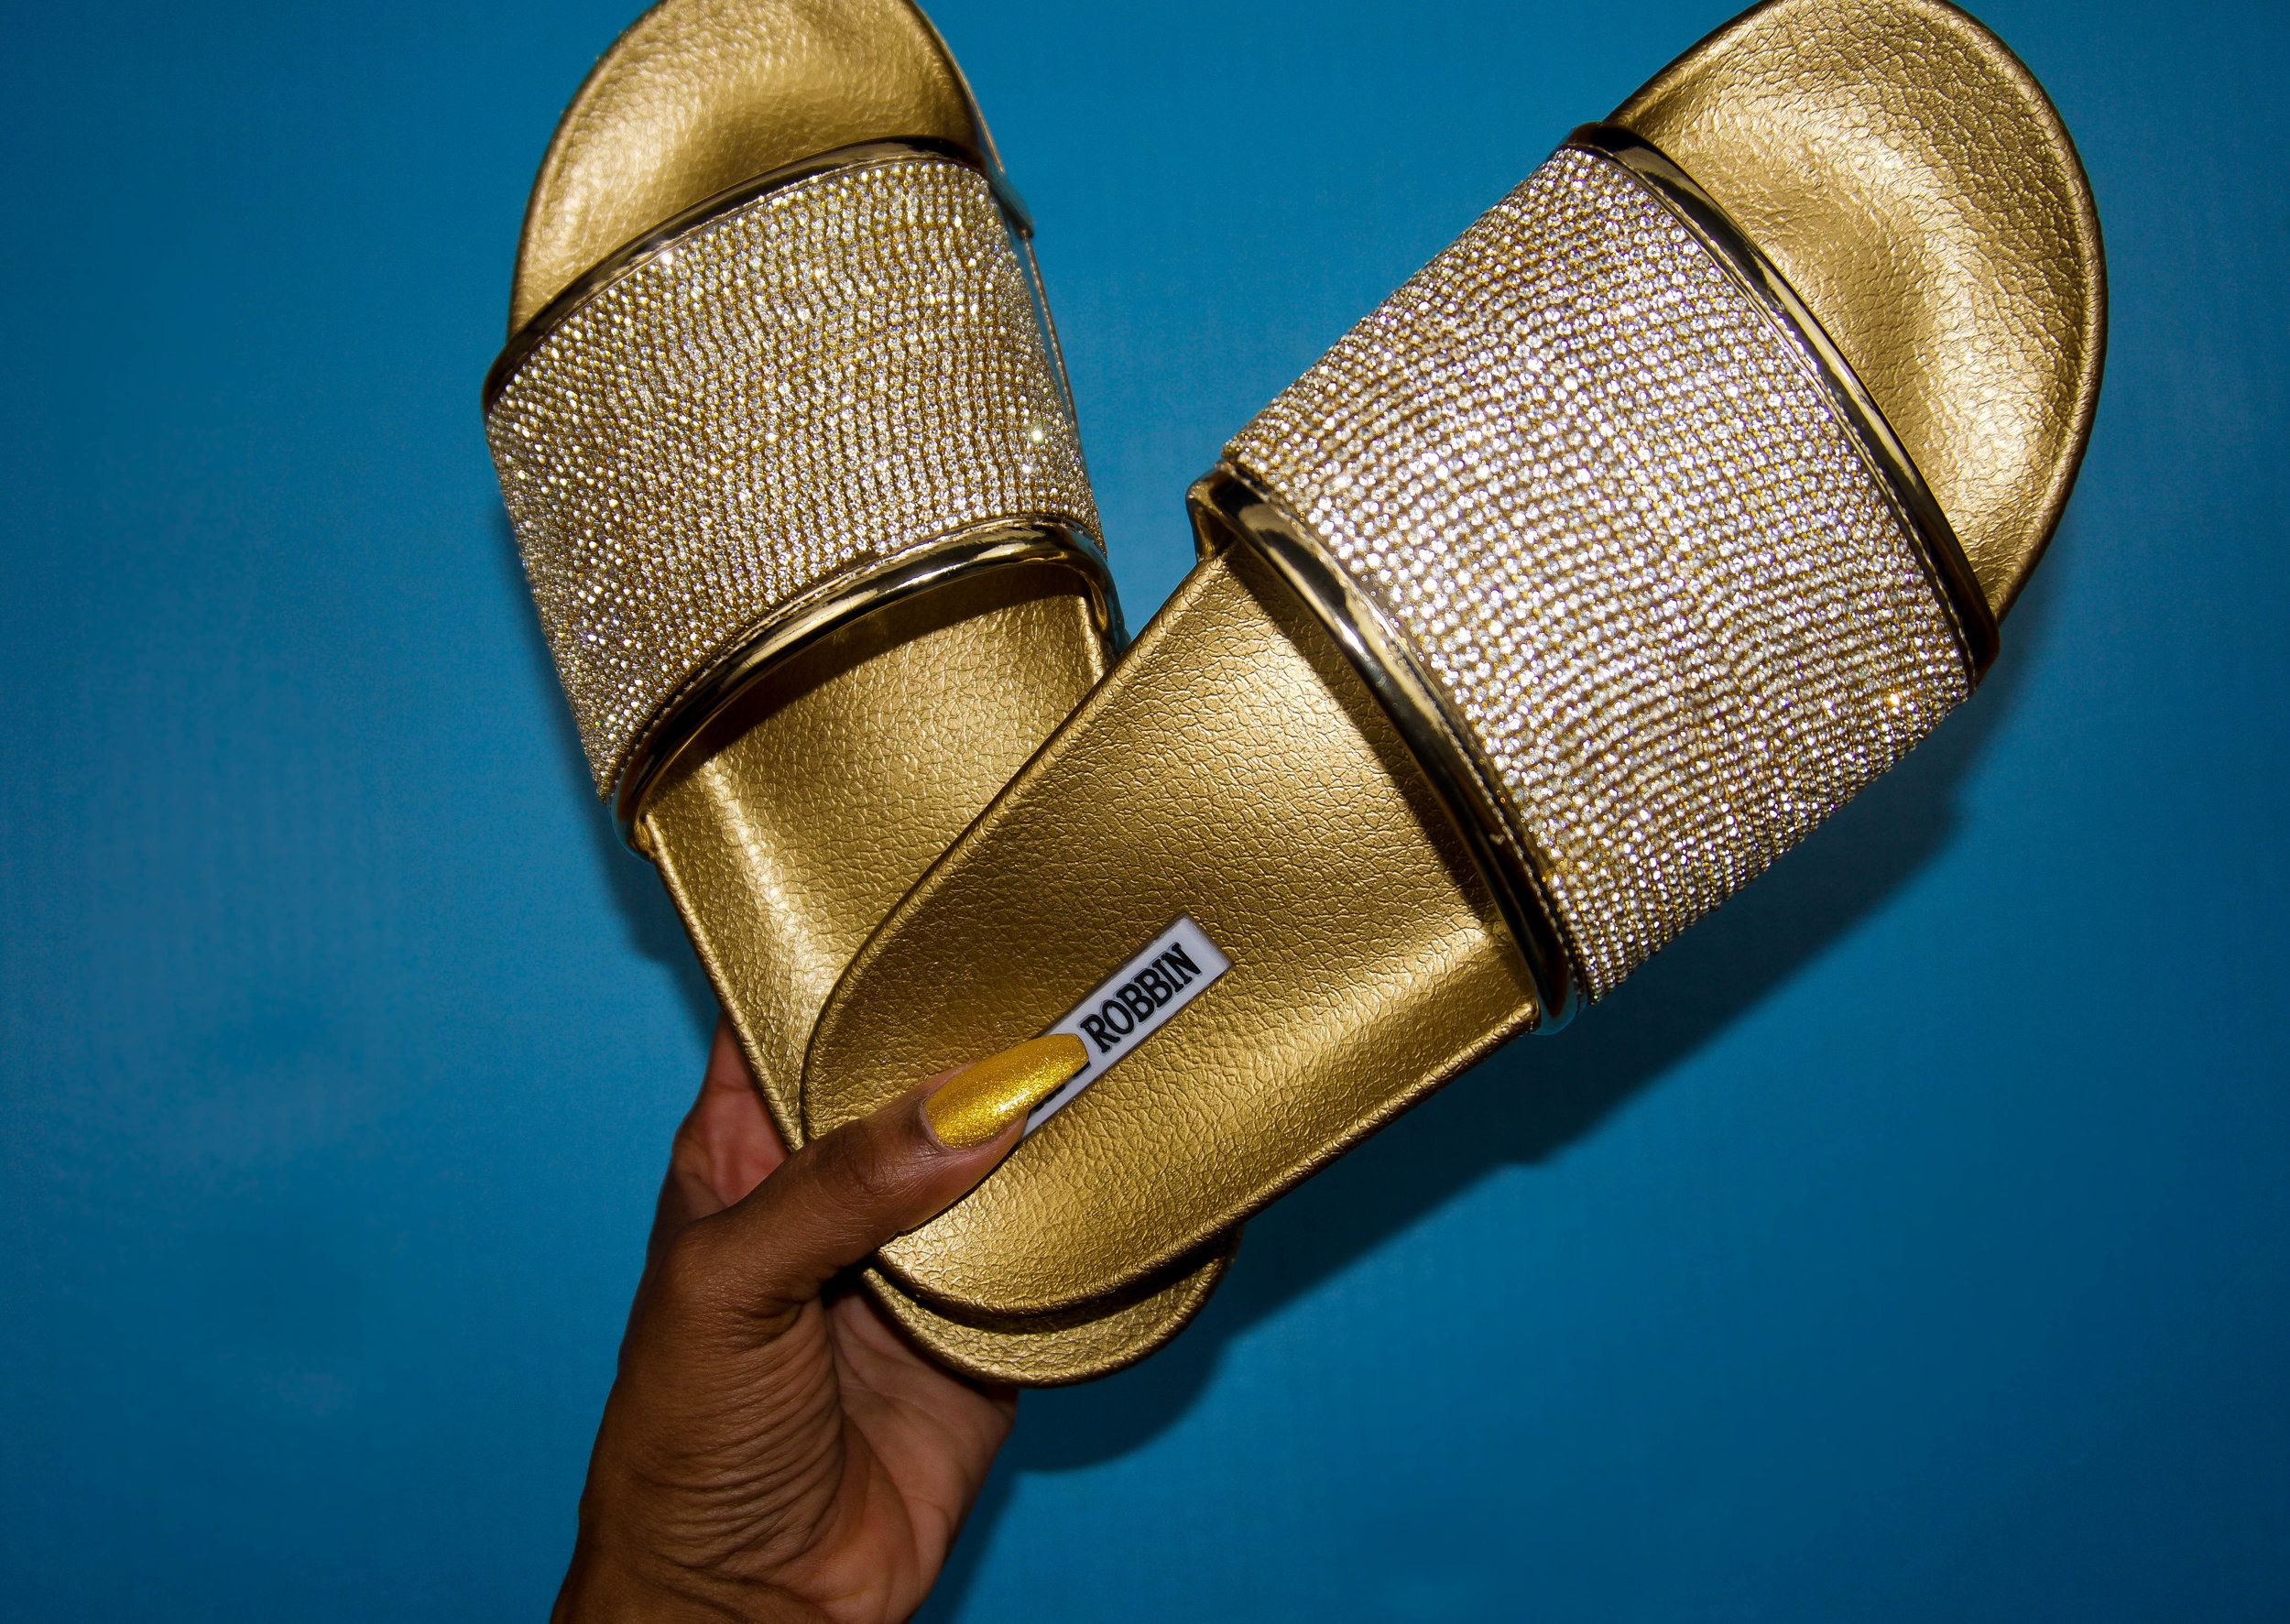 51847217506b Do-it-yourself fashion project to make your own sparkly flat sandals. These  gold flat sandals are perfect addition to add some extra shine to your  summer ...